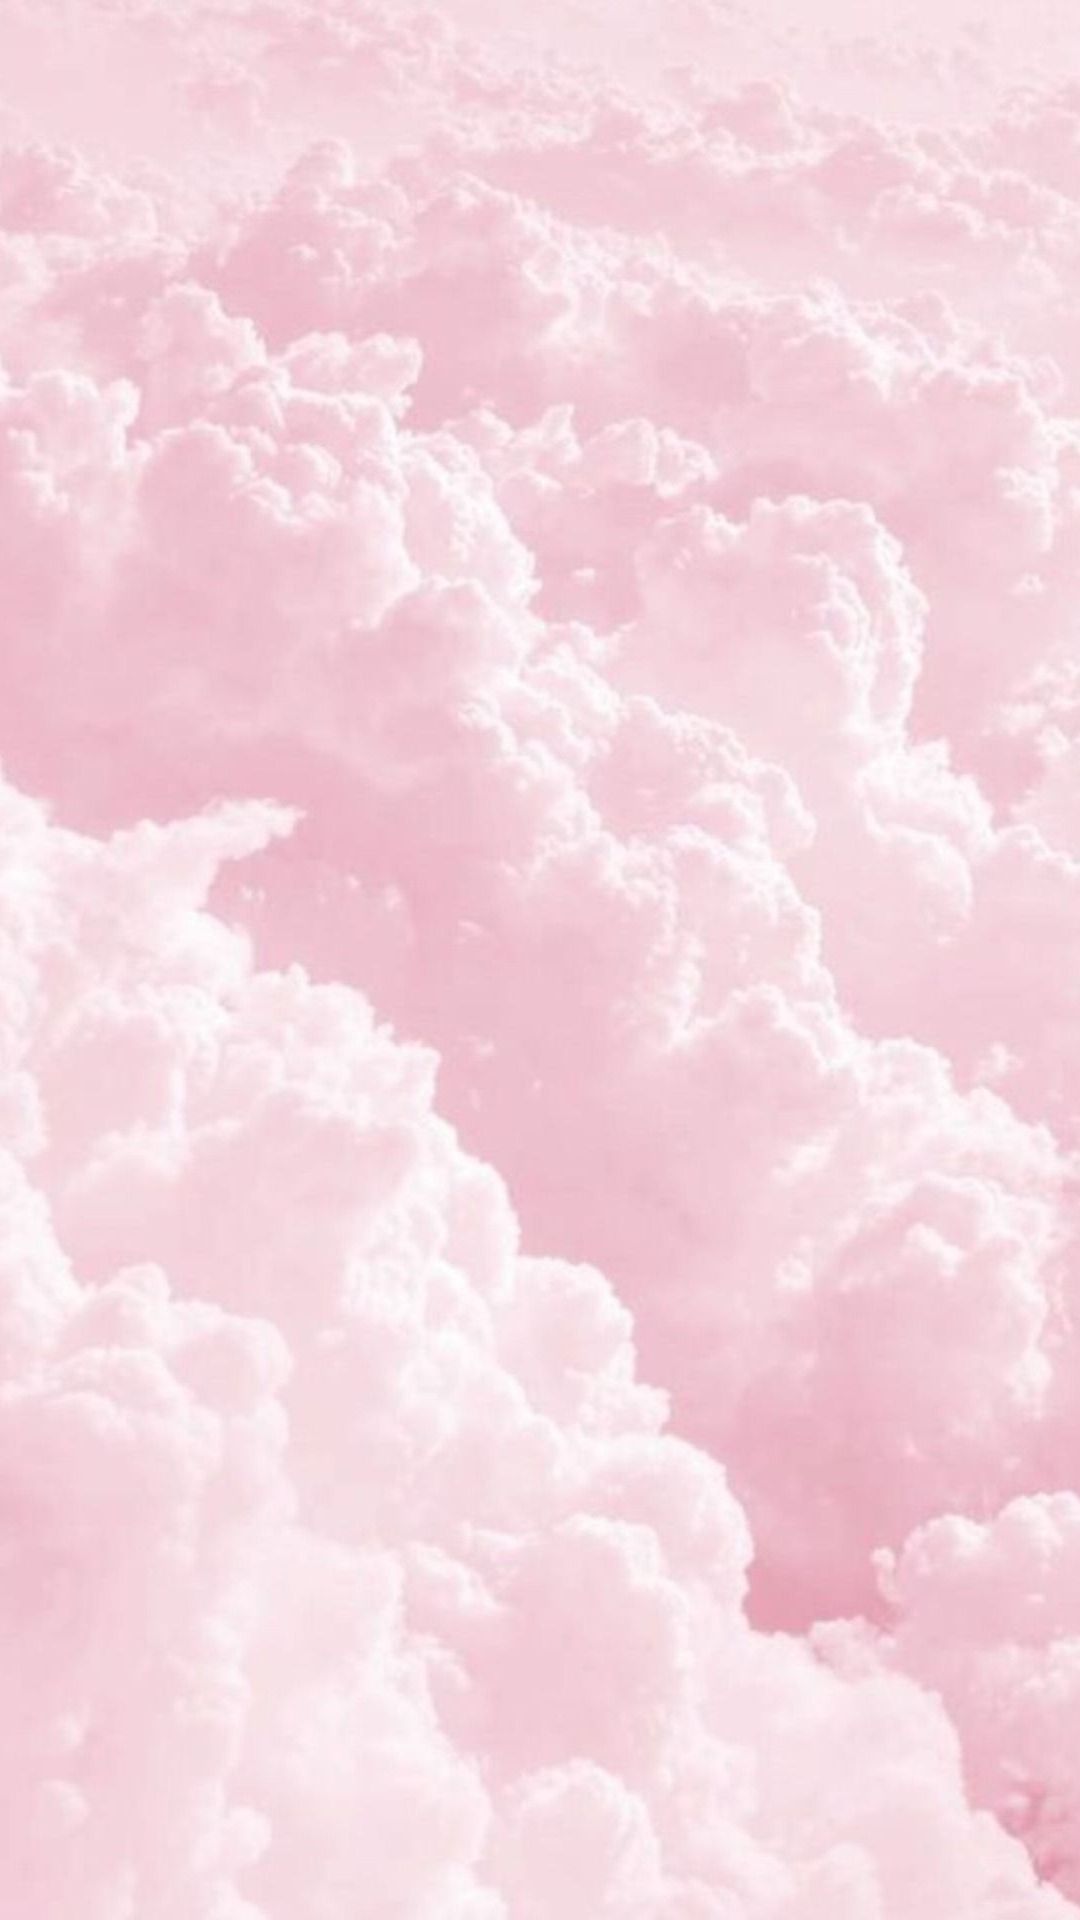 Aesthetic Pink And White Hd Wallpaper Android Pink Clouds Wallpaper Cute Pastel Wallpaper Pastel Pink Aesthetic